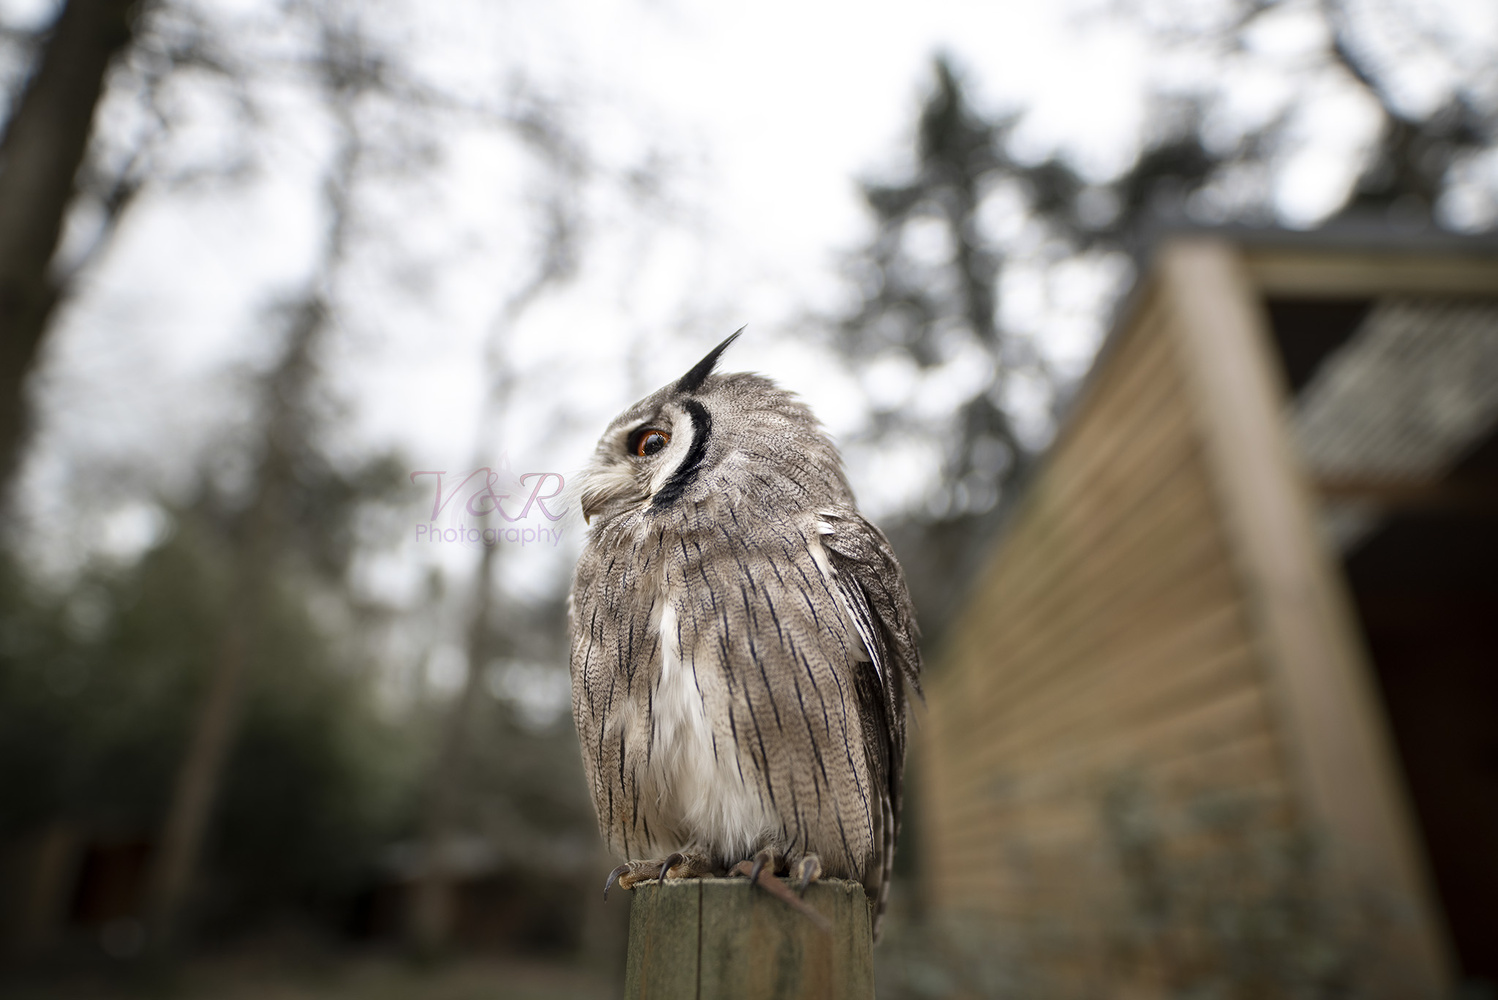 The Small Owl by Griffith Bowen